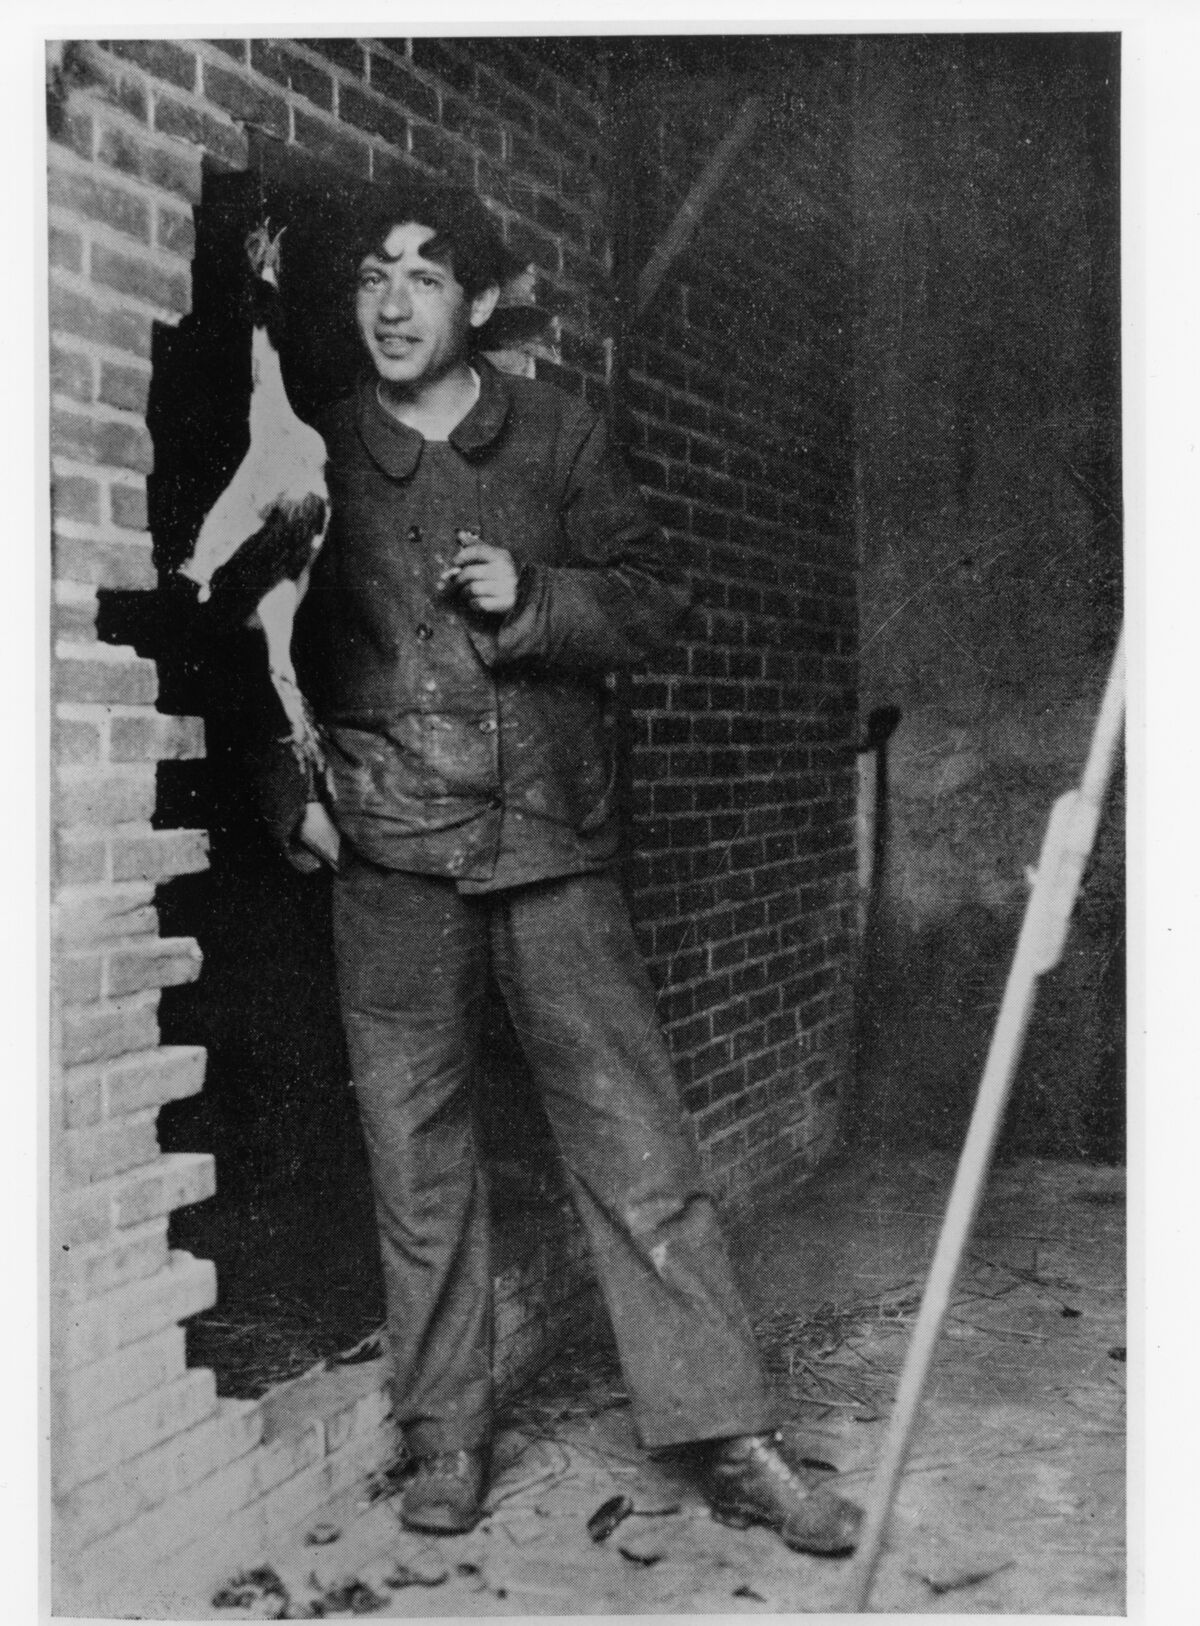 Chaim Soutine with a chicken, hanging in front of a broken brick wall, Le Blanc, western France (Indre), 1927. Courtesy of the Kluver/Martin Archive and The Jewish Museum.